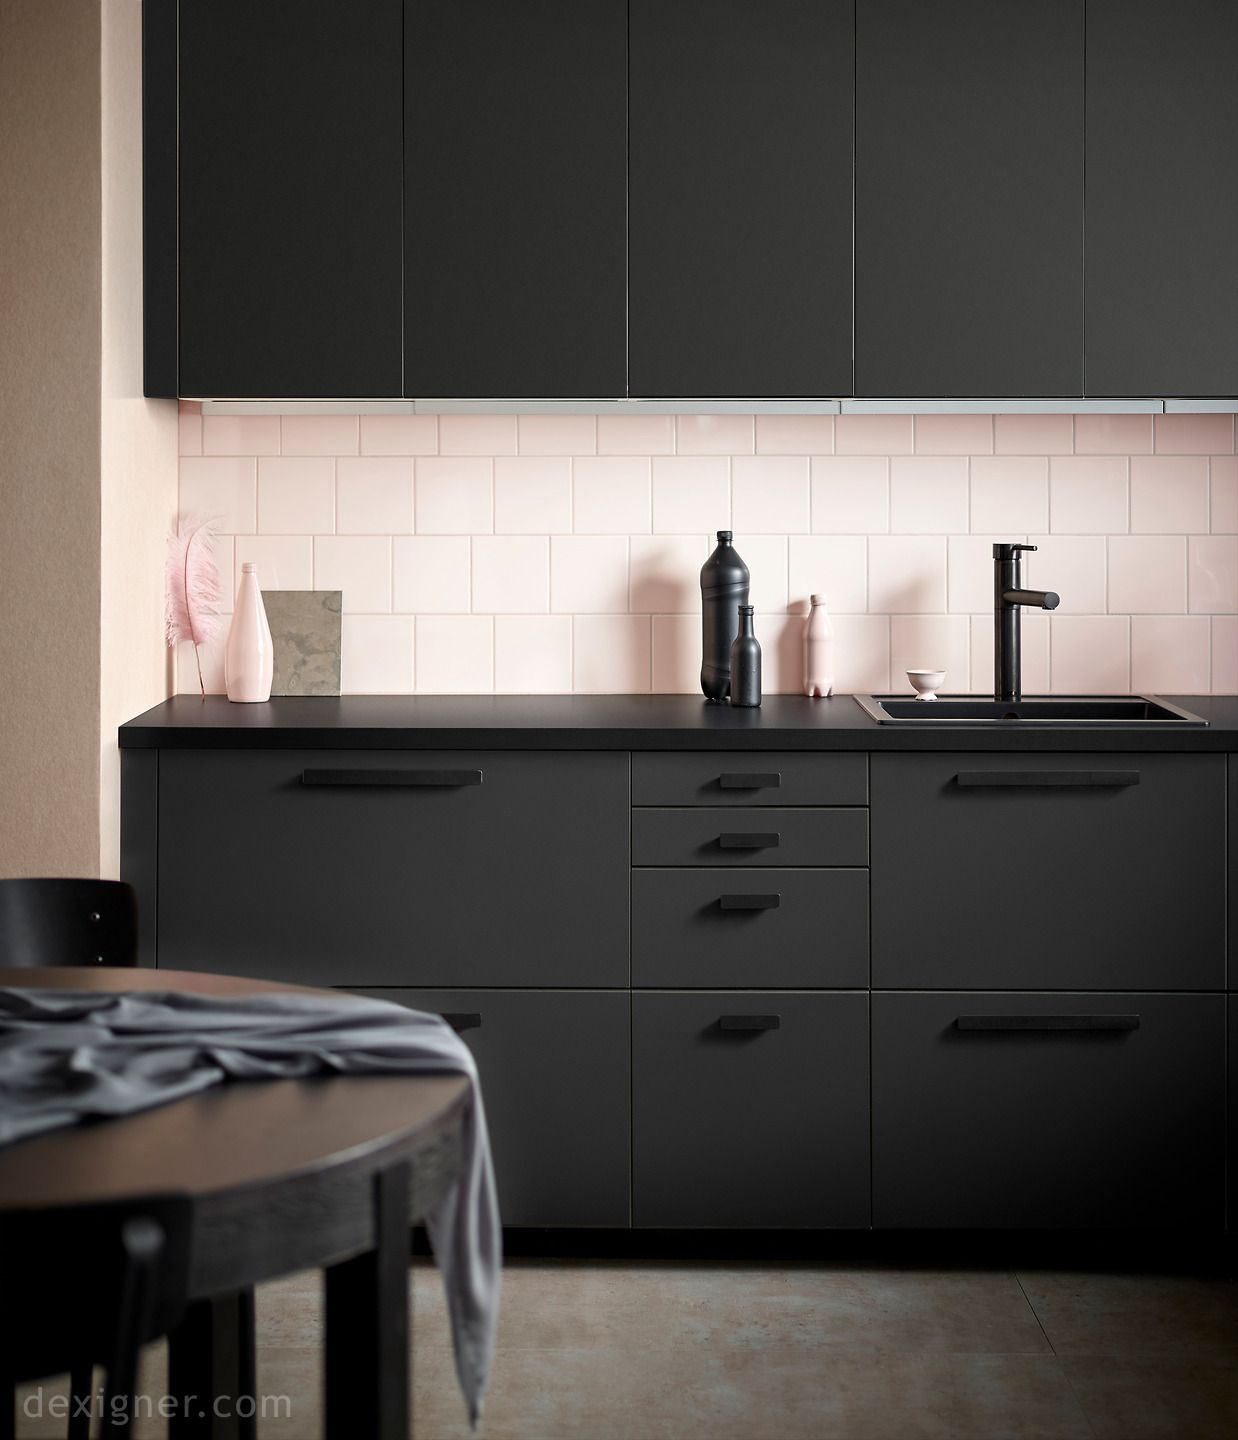 Cucina Ikea Metod Kungsbacka Kungsbacka Close Ups Contemporary Modern Furniture Minimalist